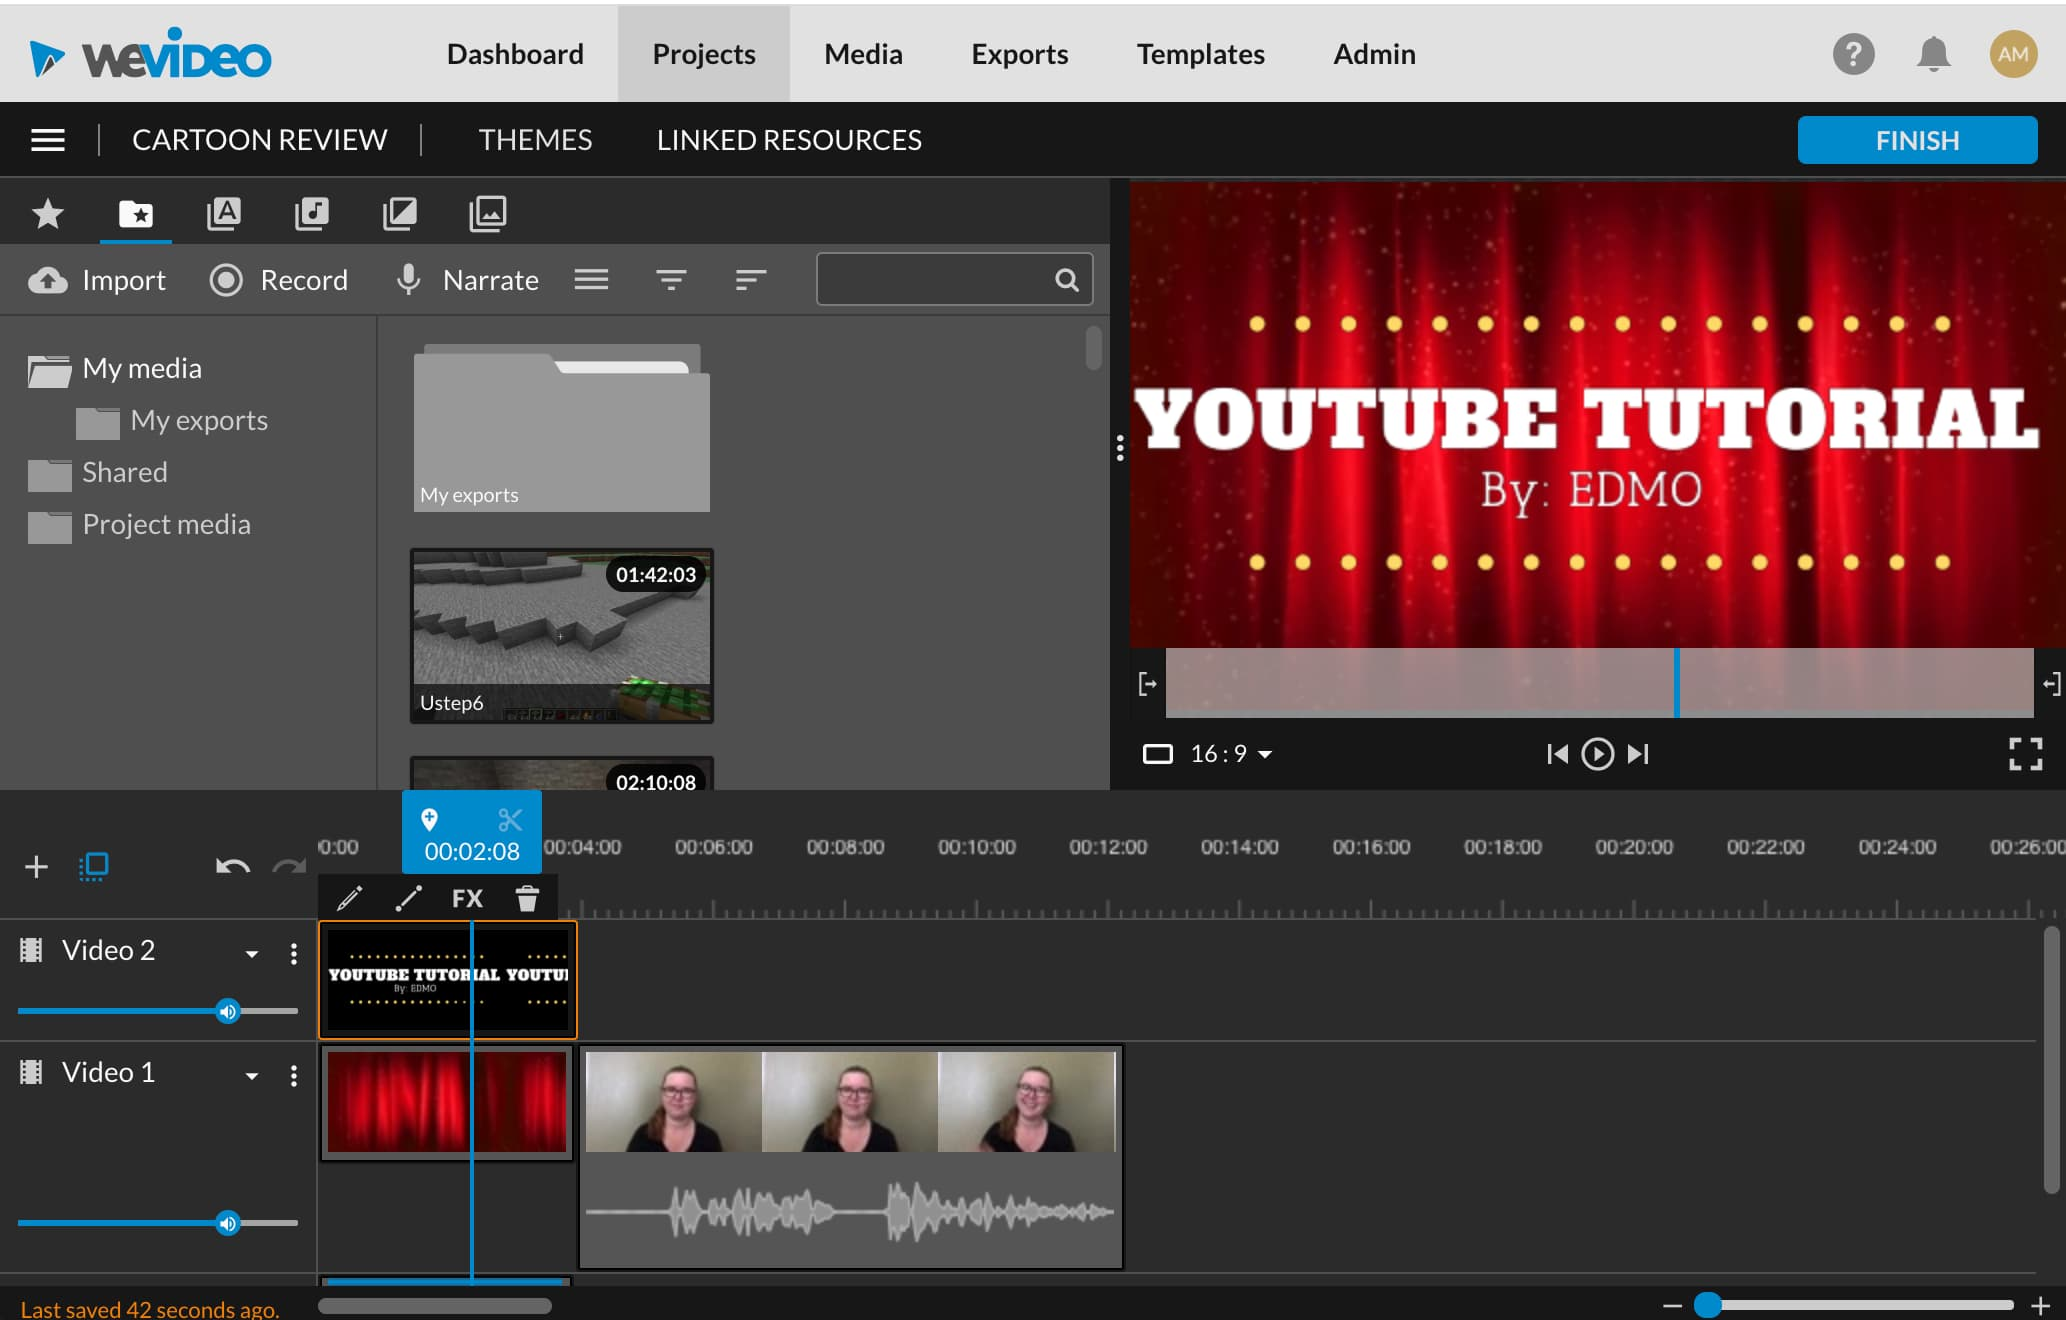 Learn to film and edit YouTube-style videos that highlight who you are and what you care about!